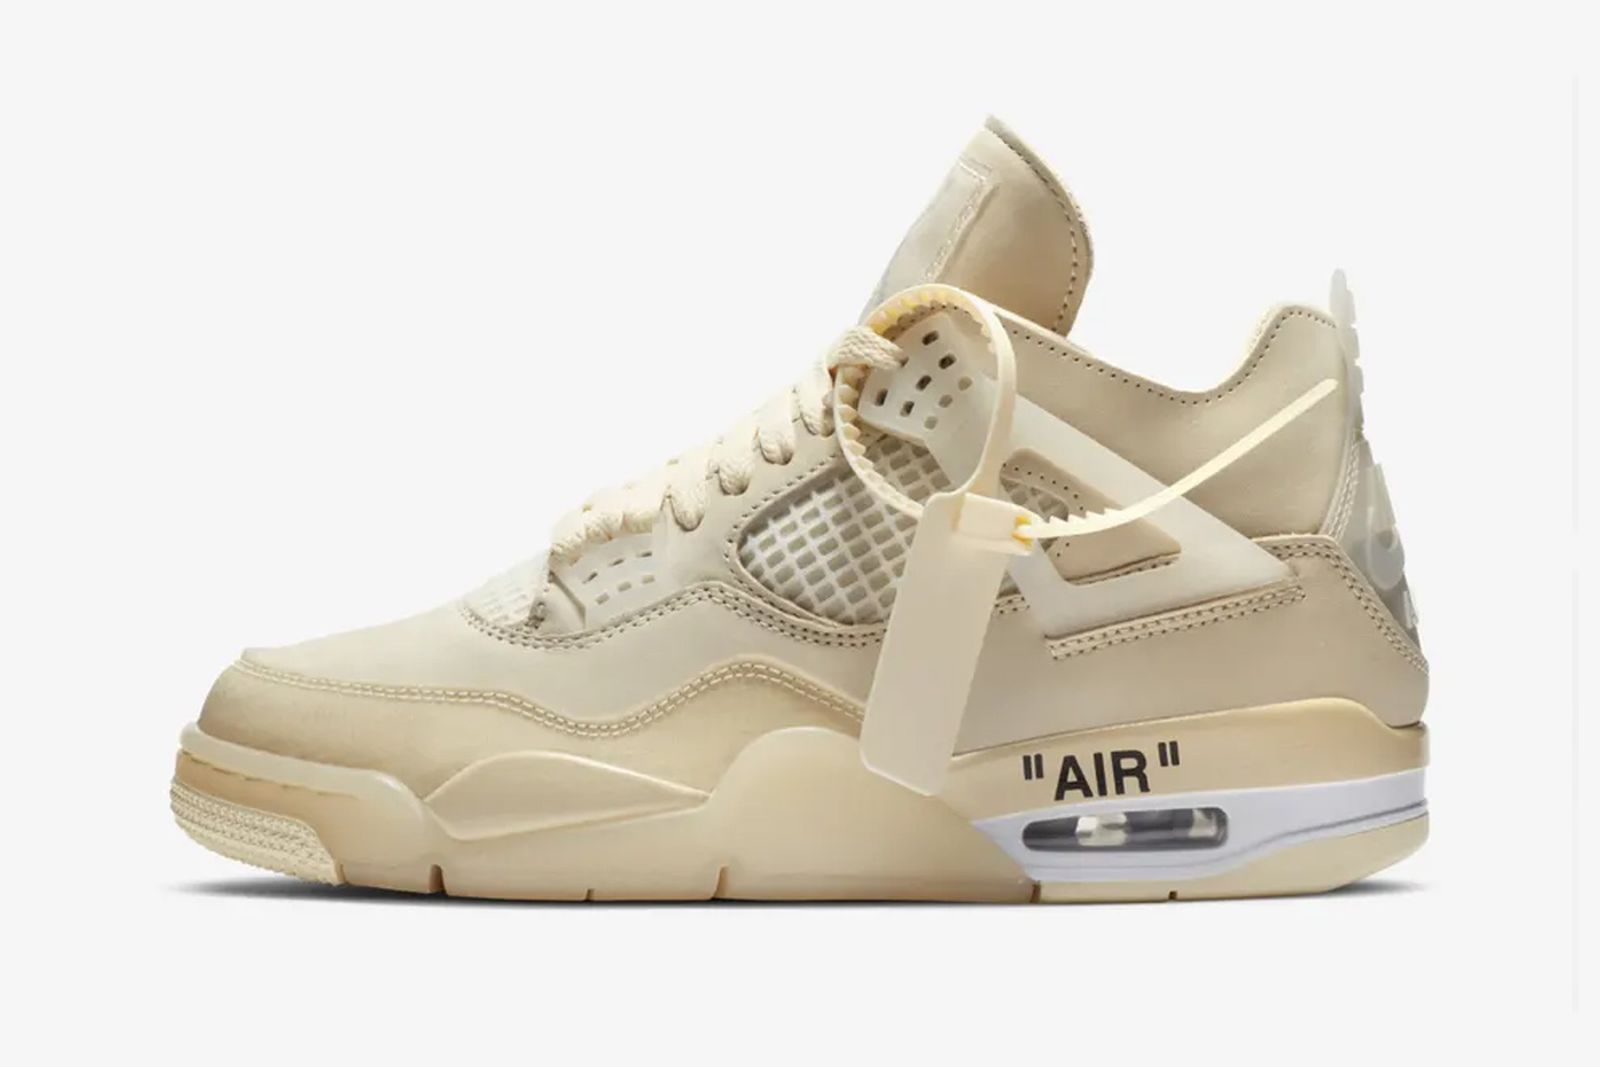 off-white x nike air jordan 4 sail product shot